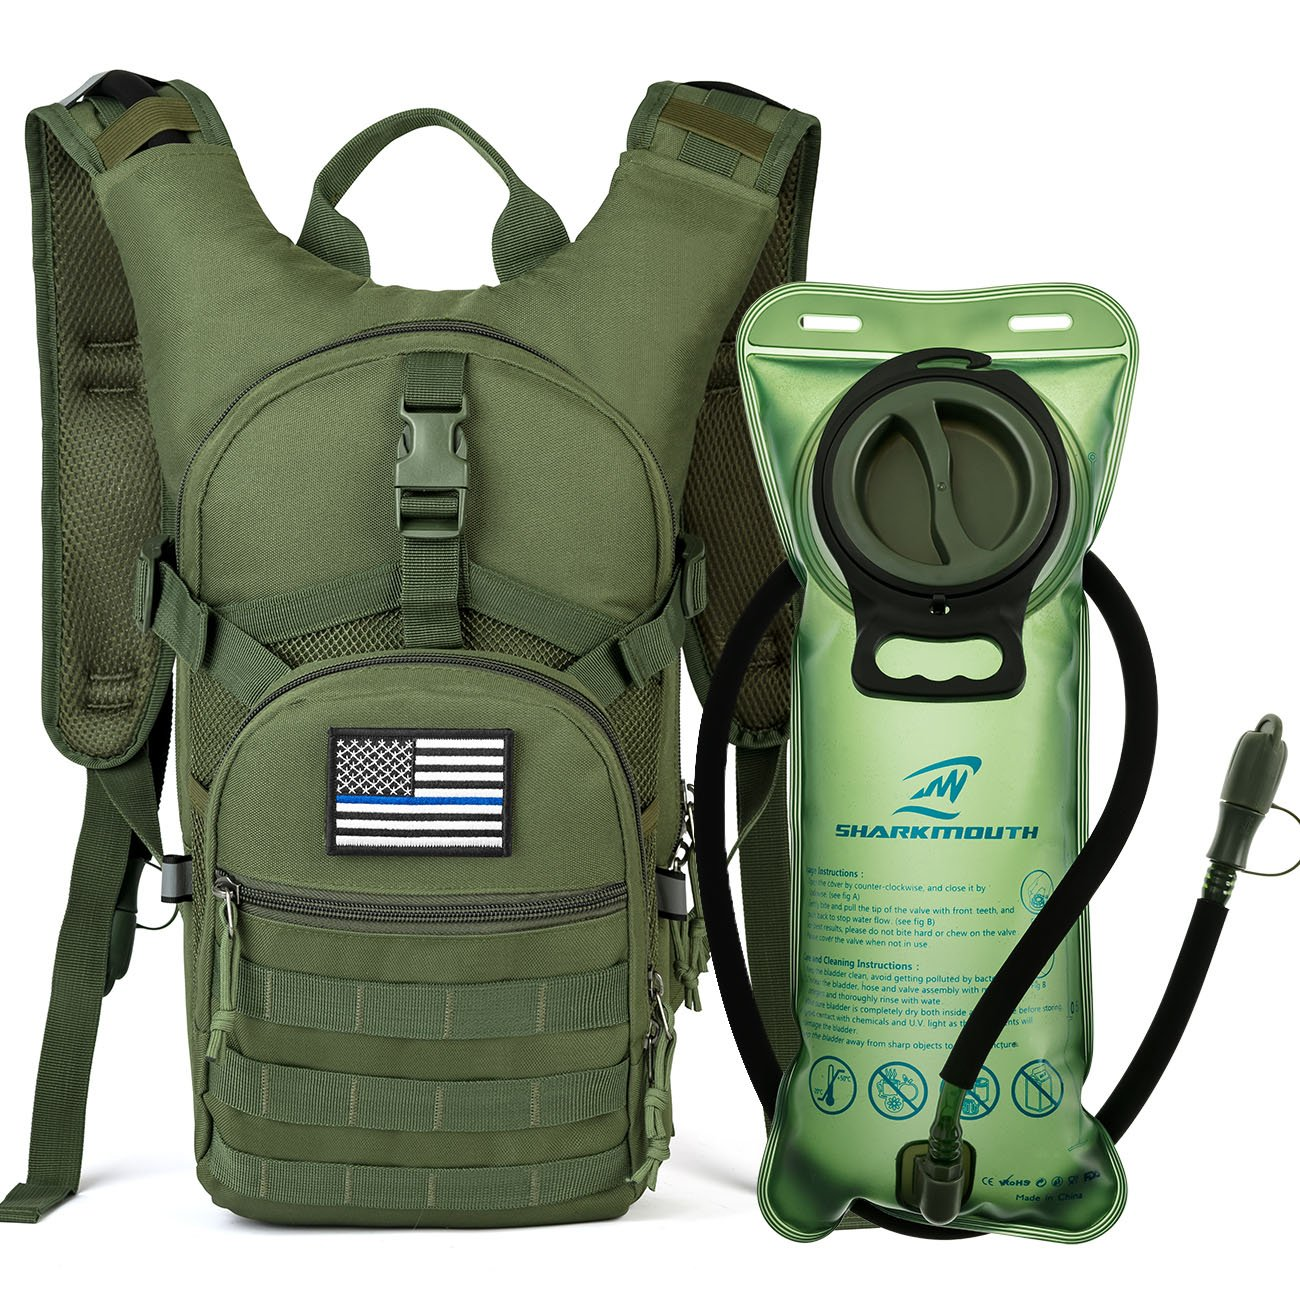 SHARKMOUTH Tactical MOLLE Hydration Pack Backpack 900D with 2L Leak-Proof Water Bladder, Keep Liquids Cool for Up to 4 Hours, Outdoor Daypack for Cycling, Hiking, Running, USA Flag Patch,Green by SHARKMOUTH